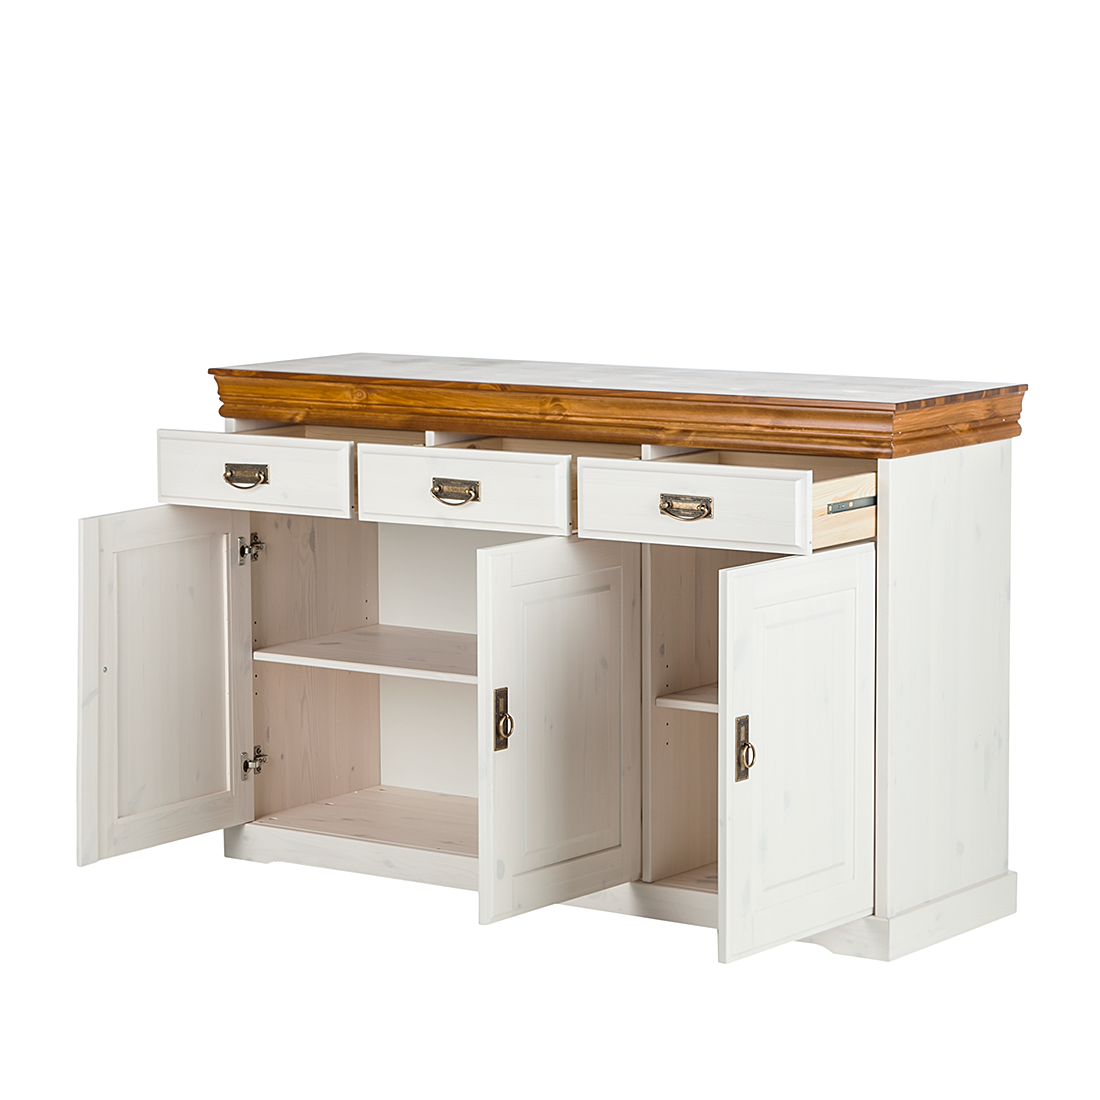 Anriche kiefer massivholz wei buffett sideboard kommode for Sideboard kiefer